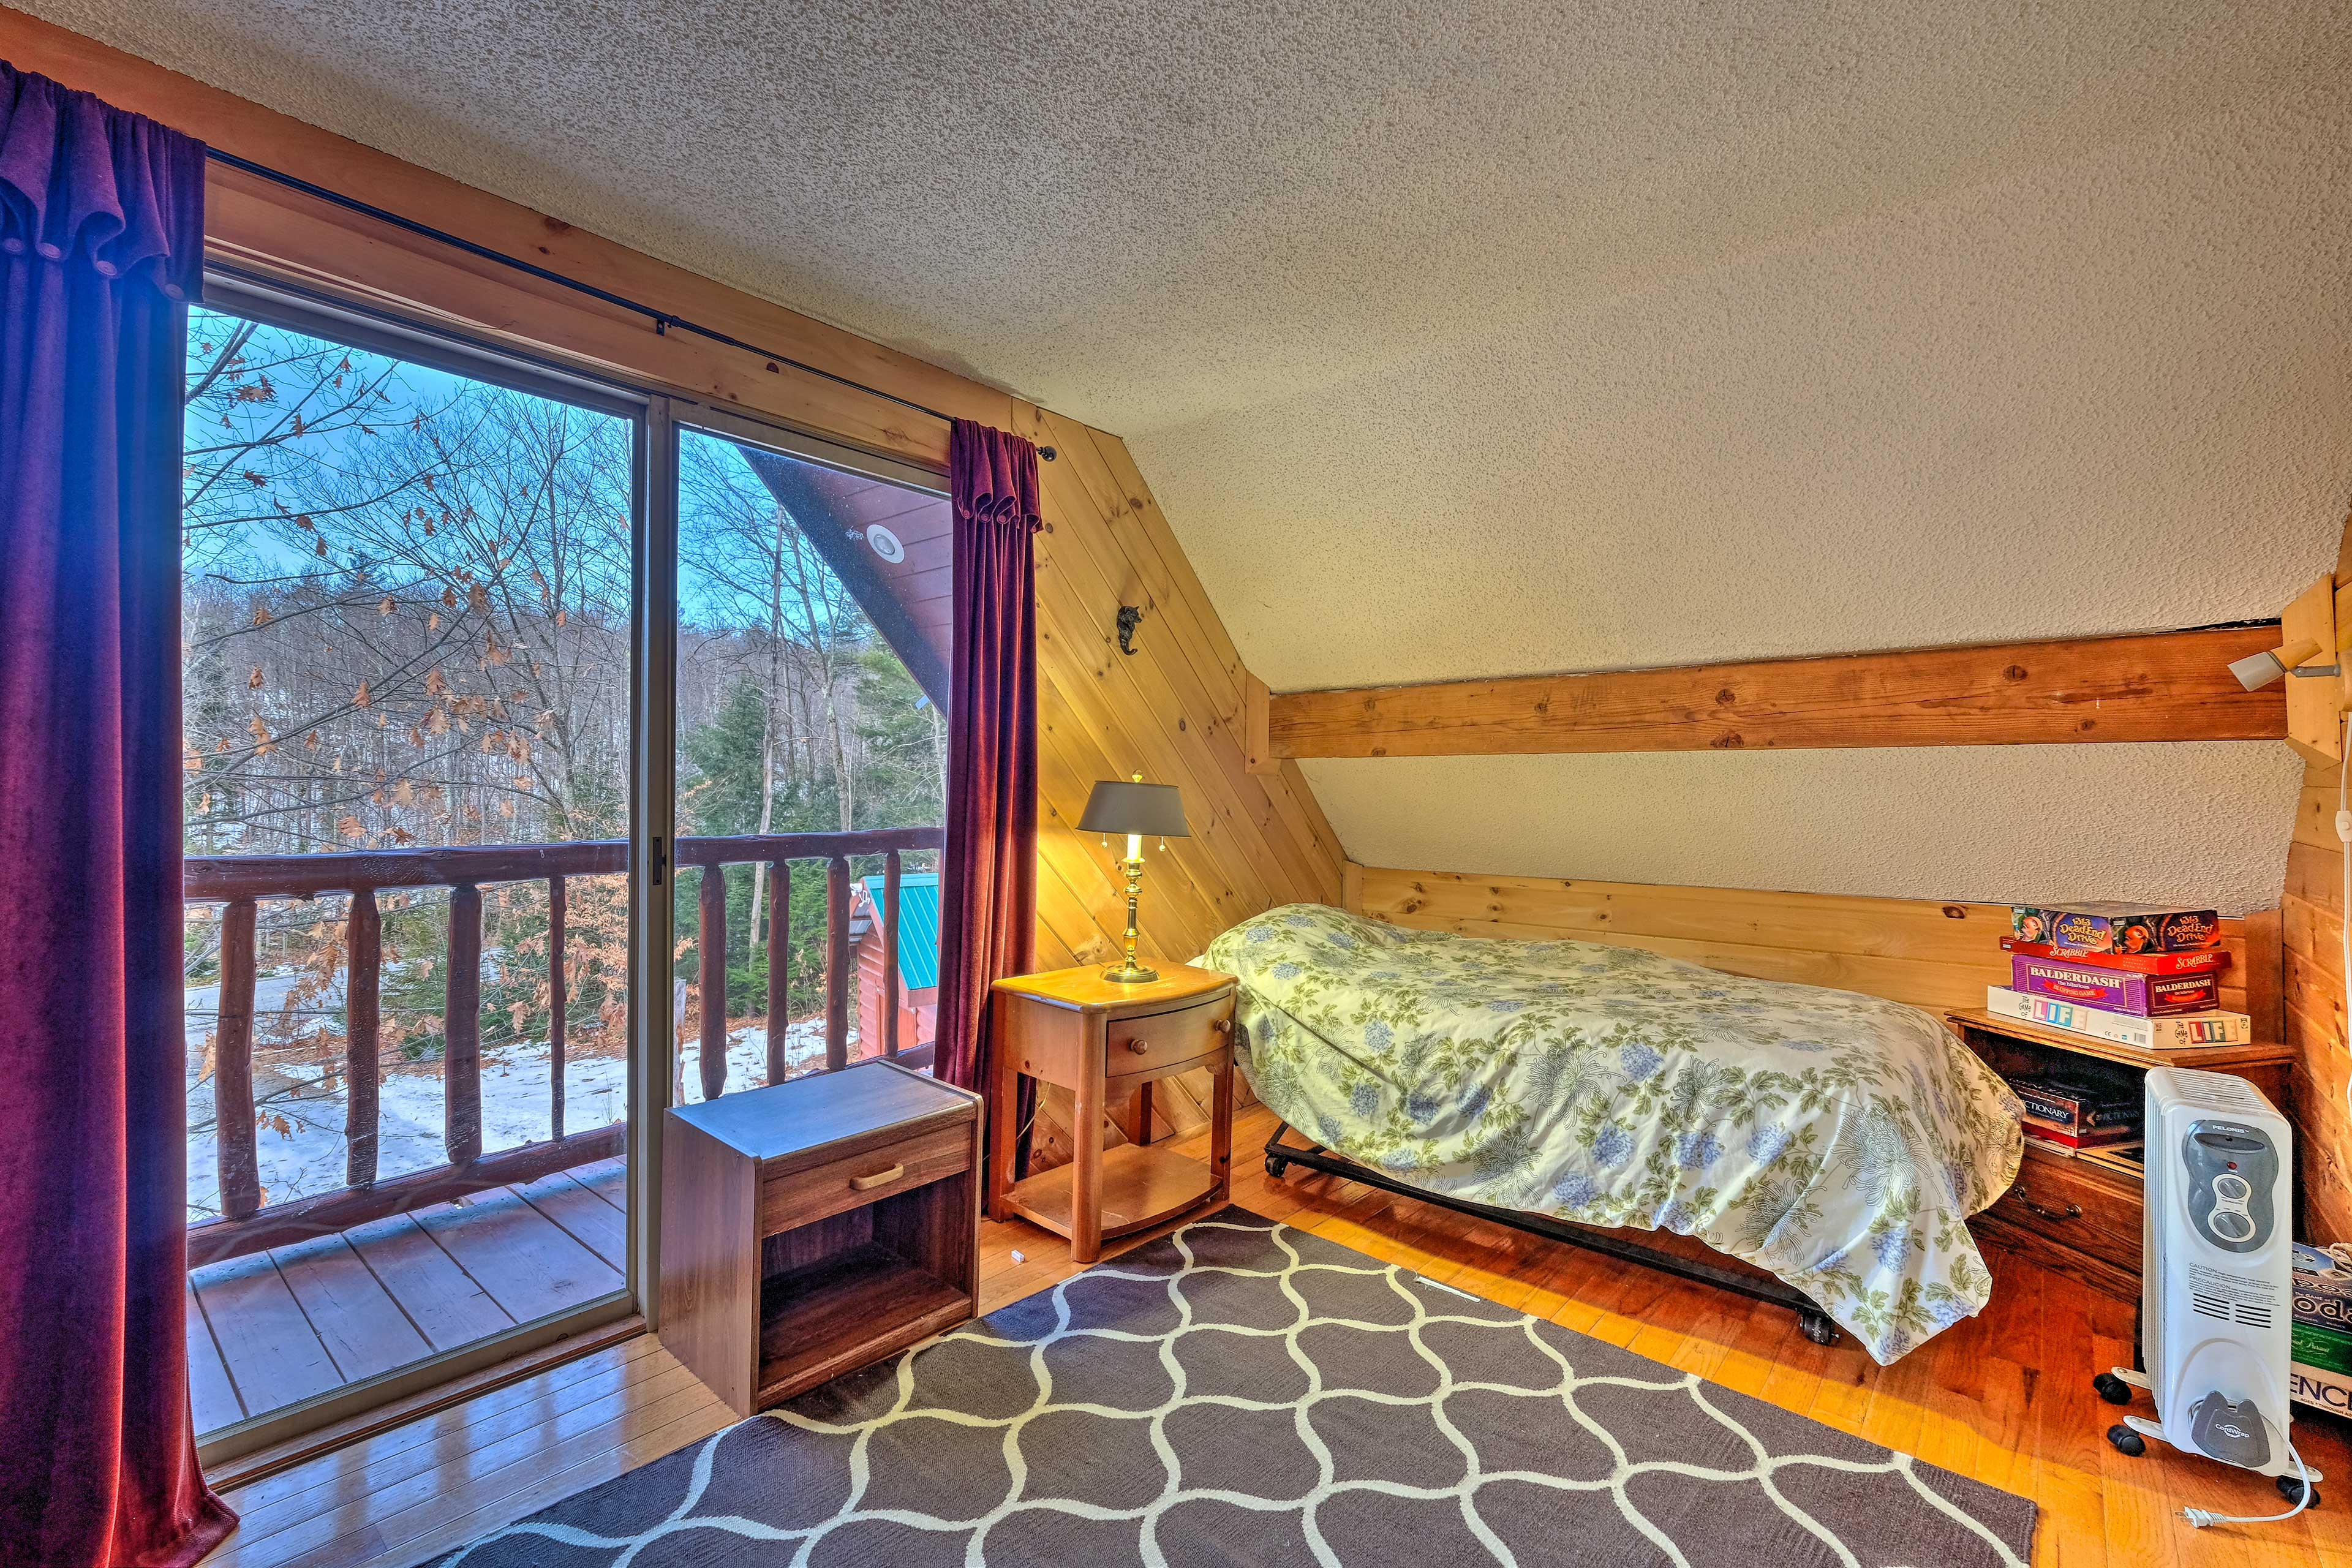 Have the kids sleep in bedroom 2 with the 2 twin beds.